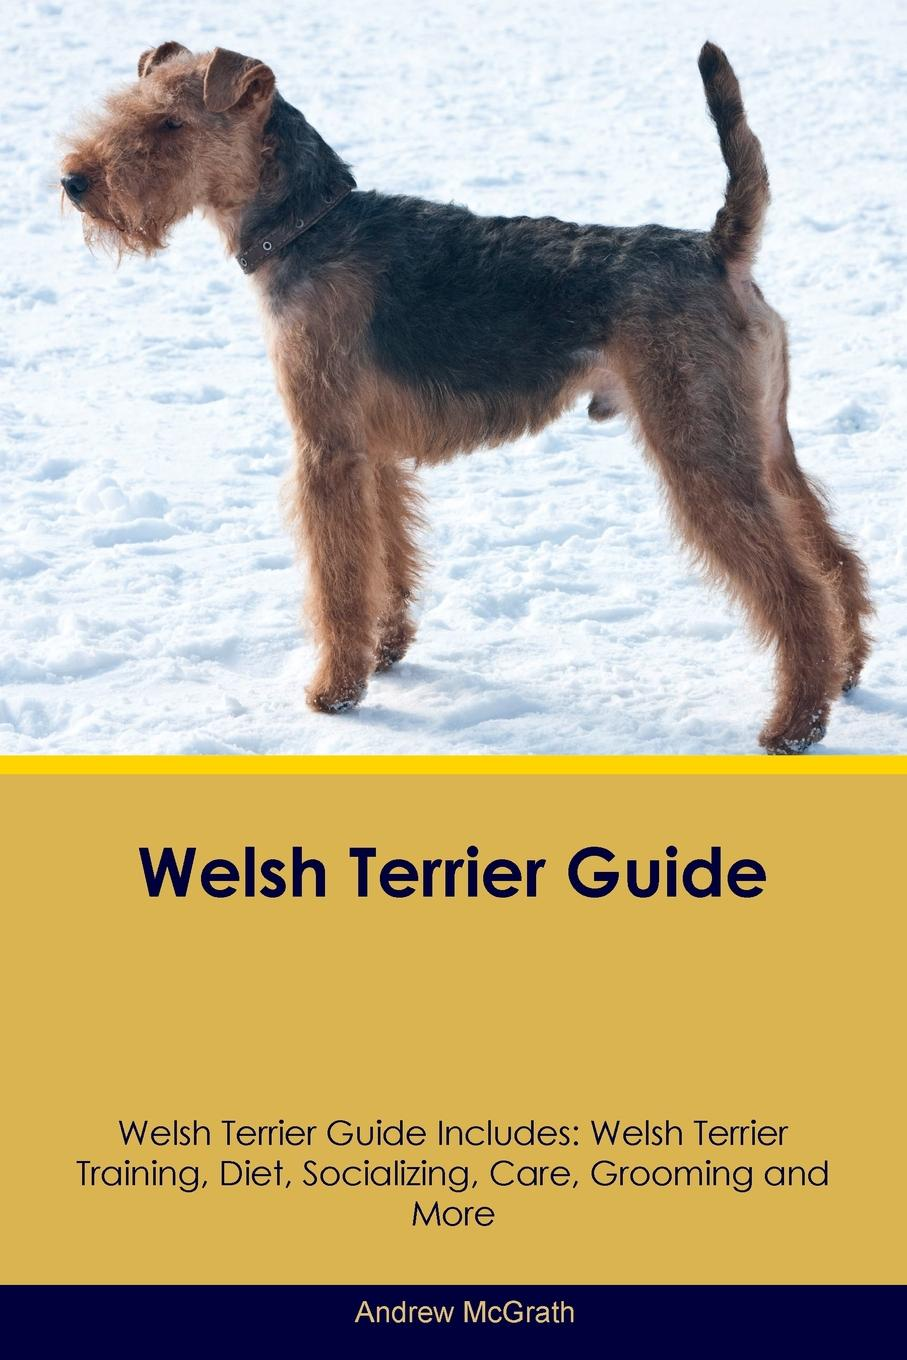 Andrew McGrath Welsh Terrier Guide Welsh Terrier Guide Includes. Welsh Terrier Training, Diet, Socializing, Care, Grooming, Breeding and More t jones a guide to welsh part i